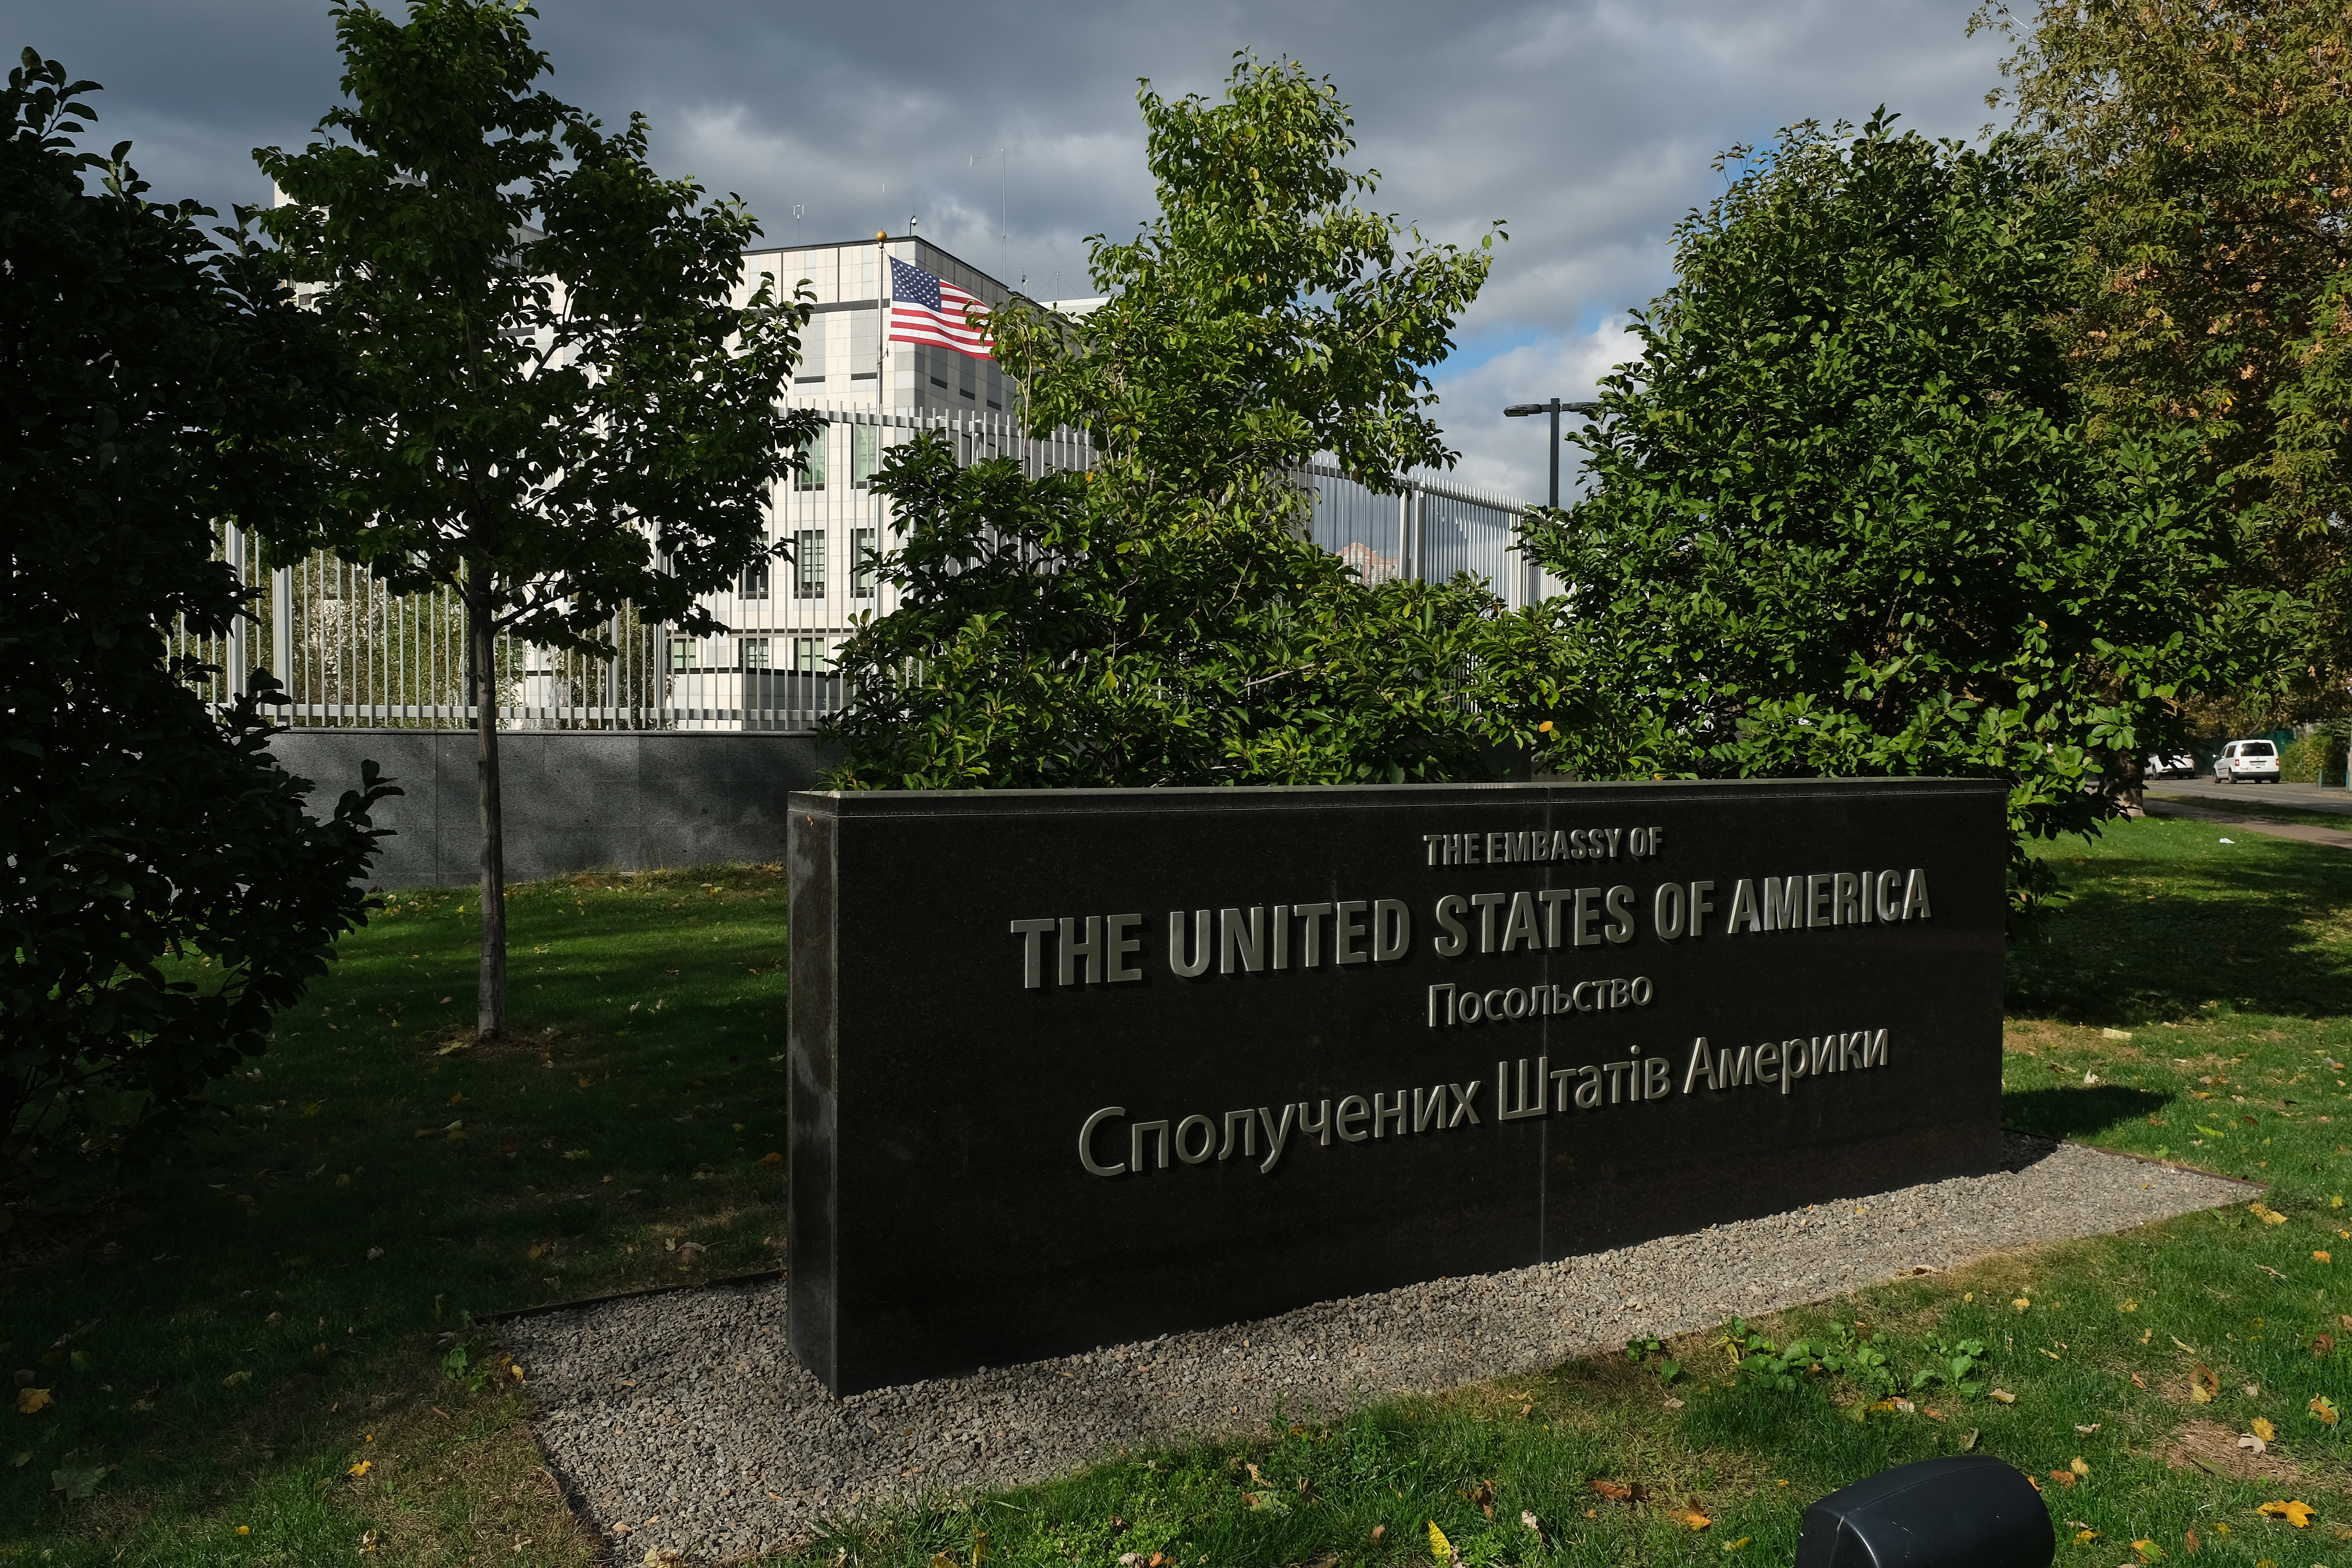 KIEV, UKRAINE - OCTOBER 01: The embassy of the United States of America stands on October 01, 2019 in Kiev, Ukraine. Ukraine has found itself at the core of a political storm in U.S. politics since the release of a whistleblower's complaint suggesting U.S. President Donald Trump, at the expense of U.S. foreign policy, pressured Ukraine to investigate Trump's rival, Joe Biden, and Biden's son, Hunter. The complaint suggests too that the Trump administration recalled U.S. ambassador to Ukraine at the time, Masha Yovanovitch, because she was hindering efforts to collect information on Biden. Trump and his allies have charged that Biden, during Biden's term as Vice President, forced Ukraine to fire then General Prosecutor Viktor Shokin in order to shield Hunter, who was on the board of a Ukrainian company. Anti-corruption workers in Ukraine counter that the Obama administration, as well as other western governments, demanded Ukraine fire Shokin because Shokin was in fact impeding anti-corruption efforts. (Photo by Sean Gallup/Getty Images)